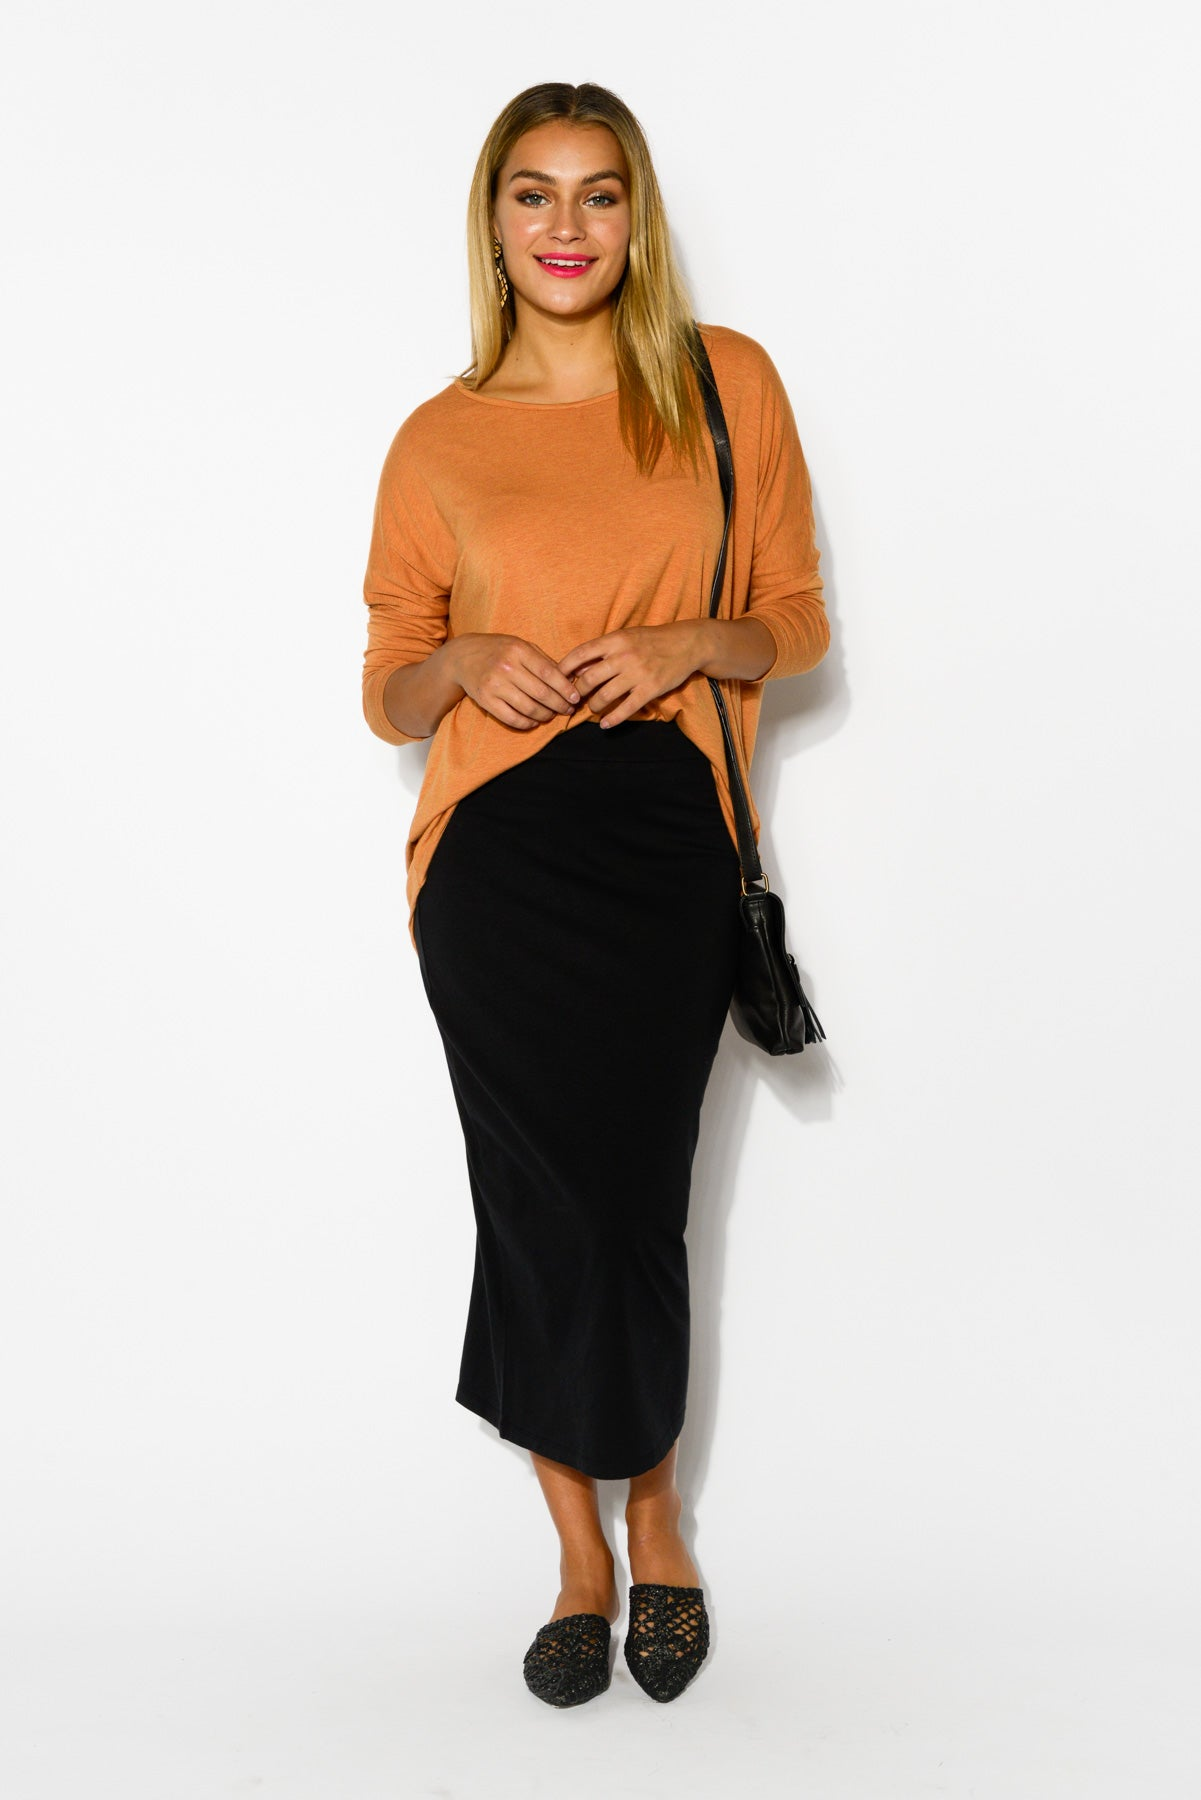 Gigi Black Midi Skirt - Blue Bungalow